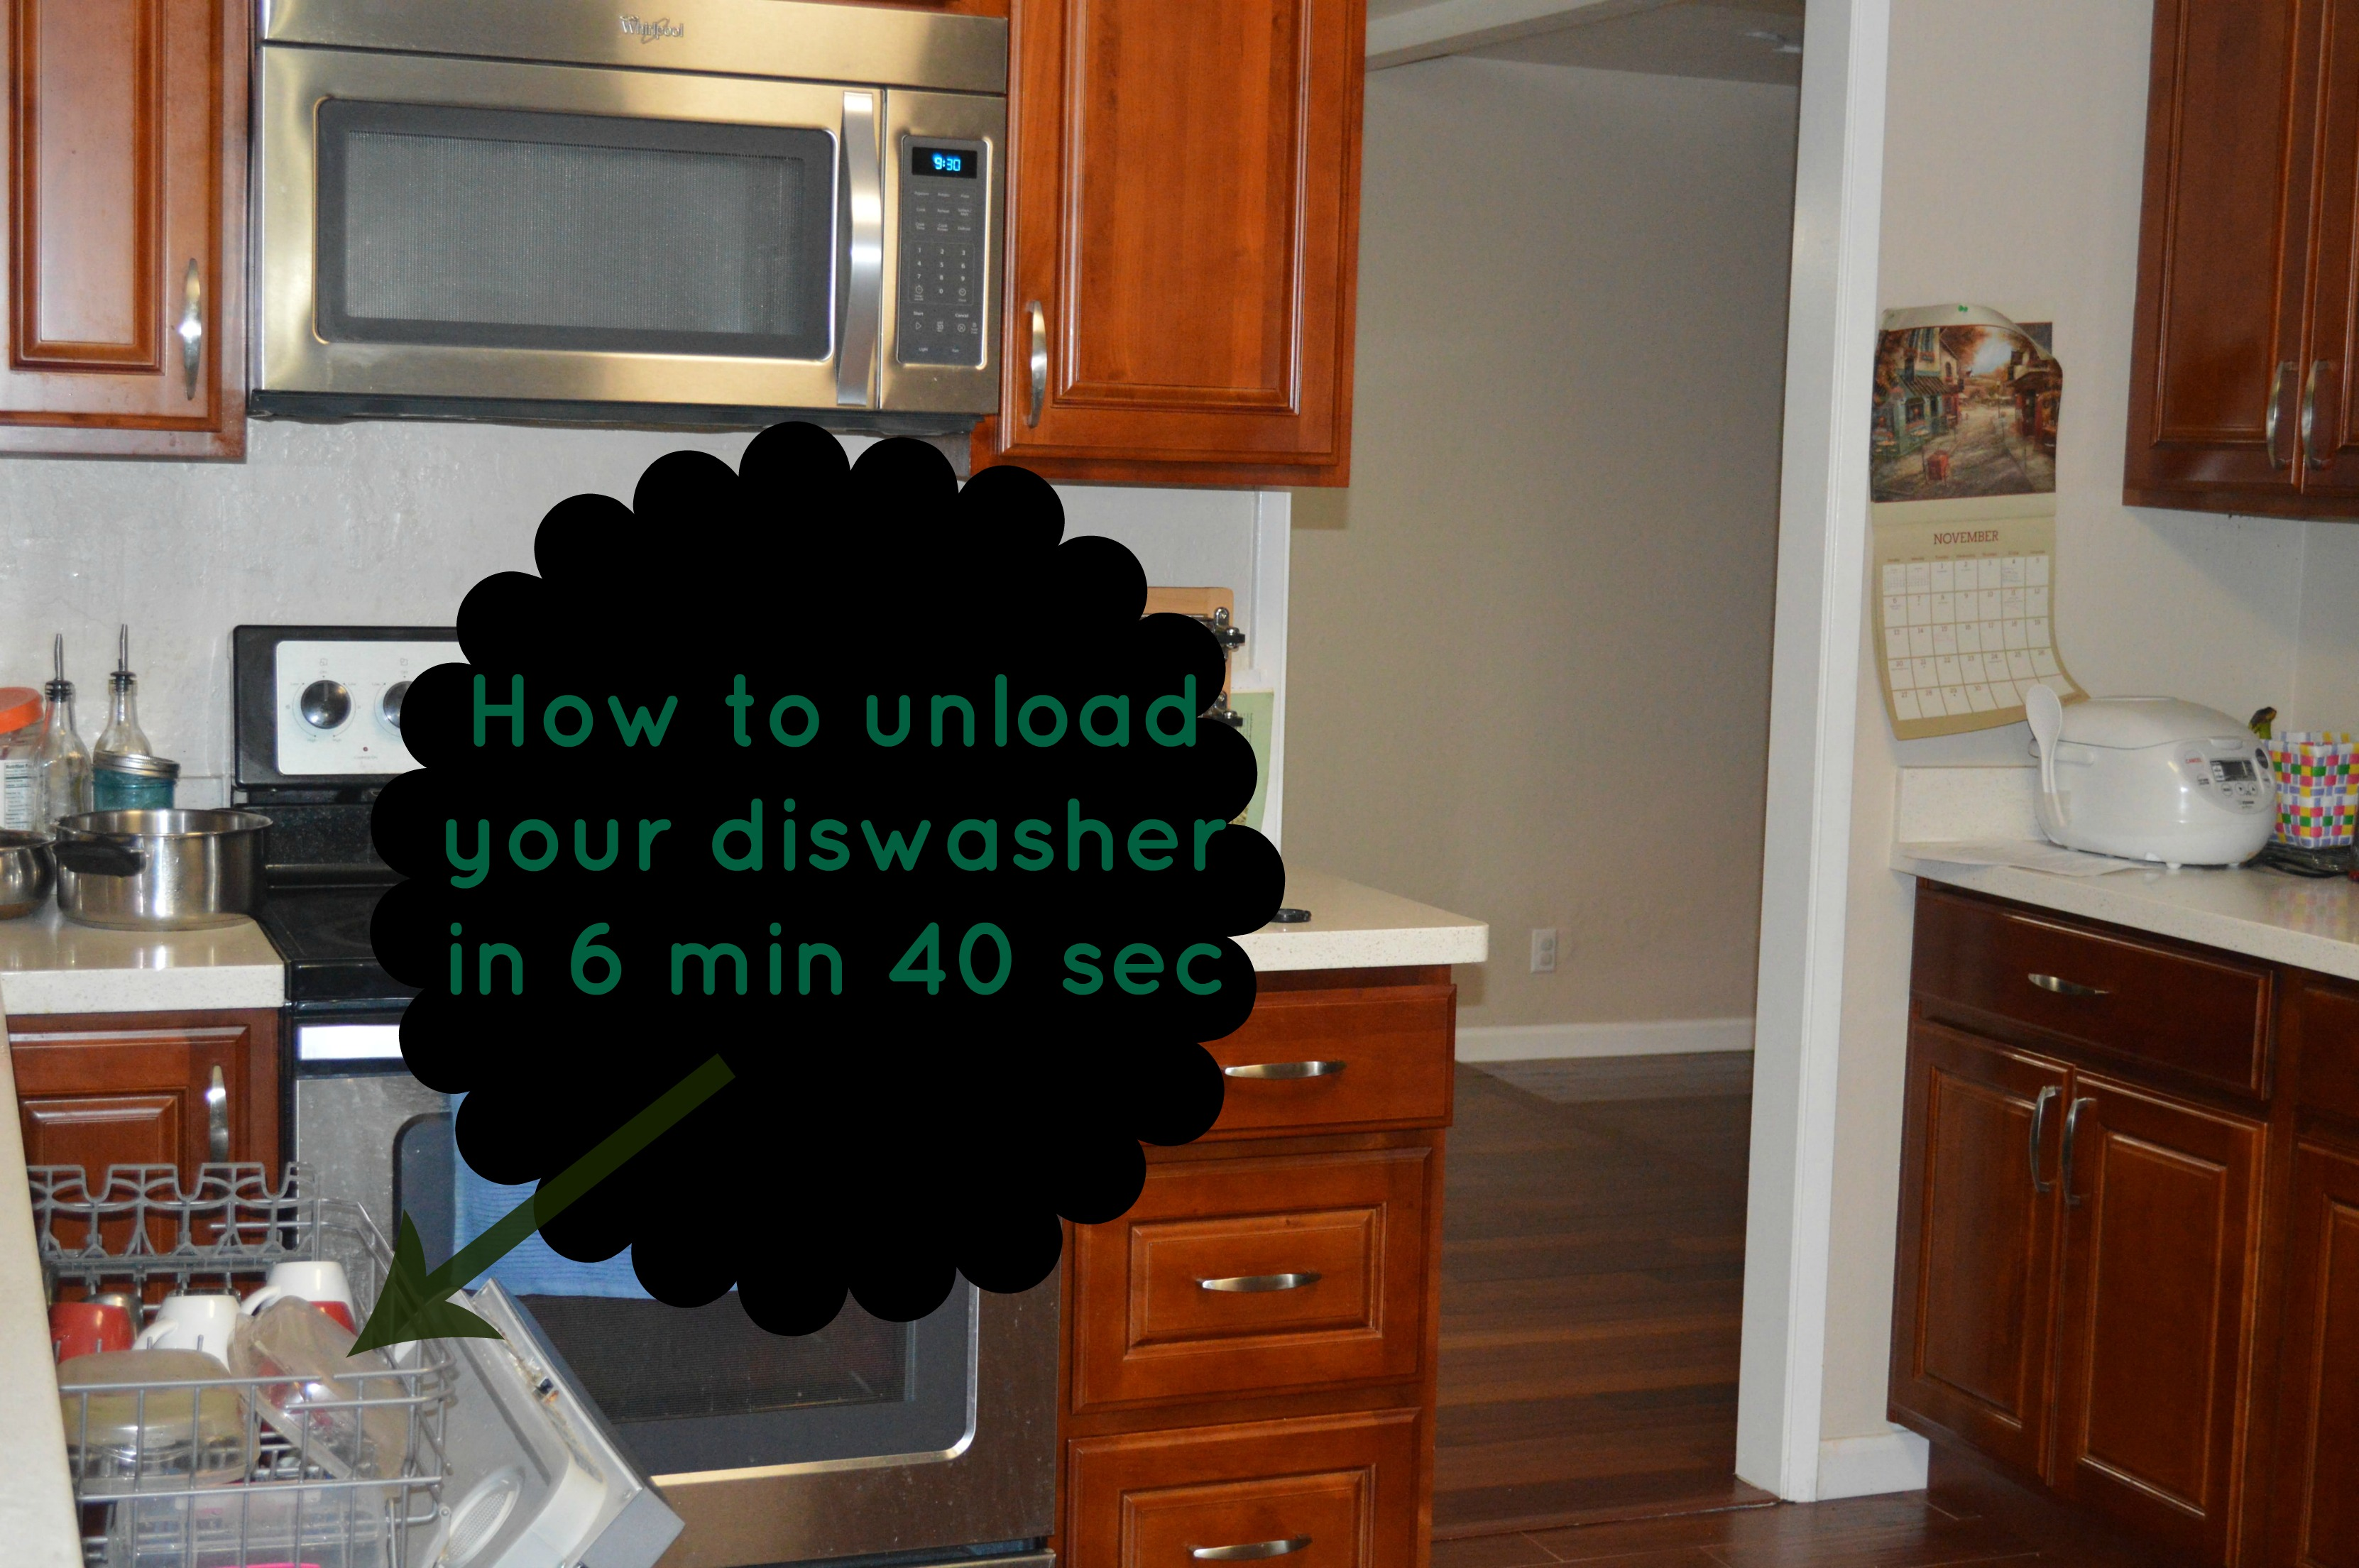 How I unload my dishwasher in 6 min 40 sec...Find out more at www.upgrademyfood.com